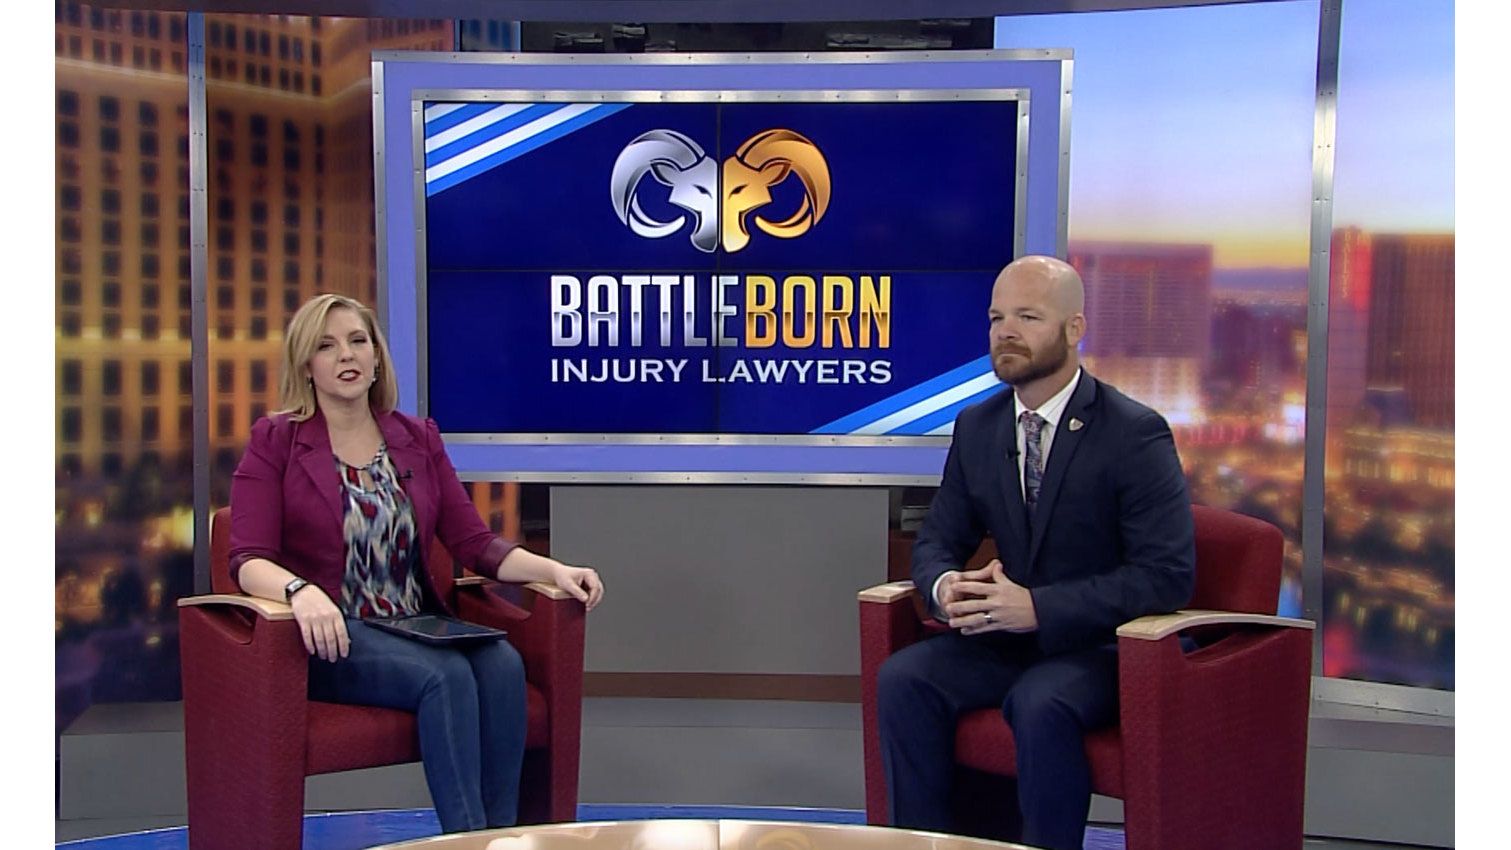 Shedding light on hate crimes with Battle Born Lawyers